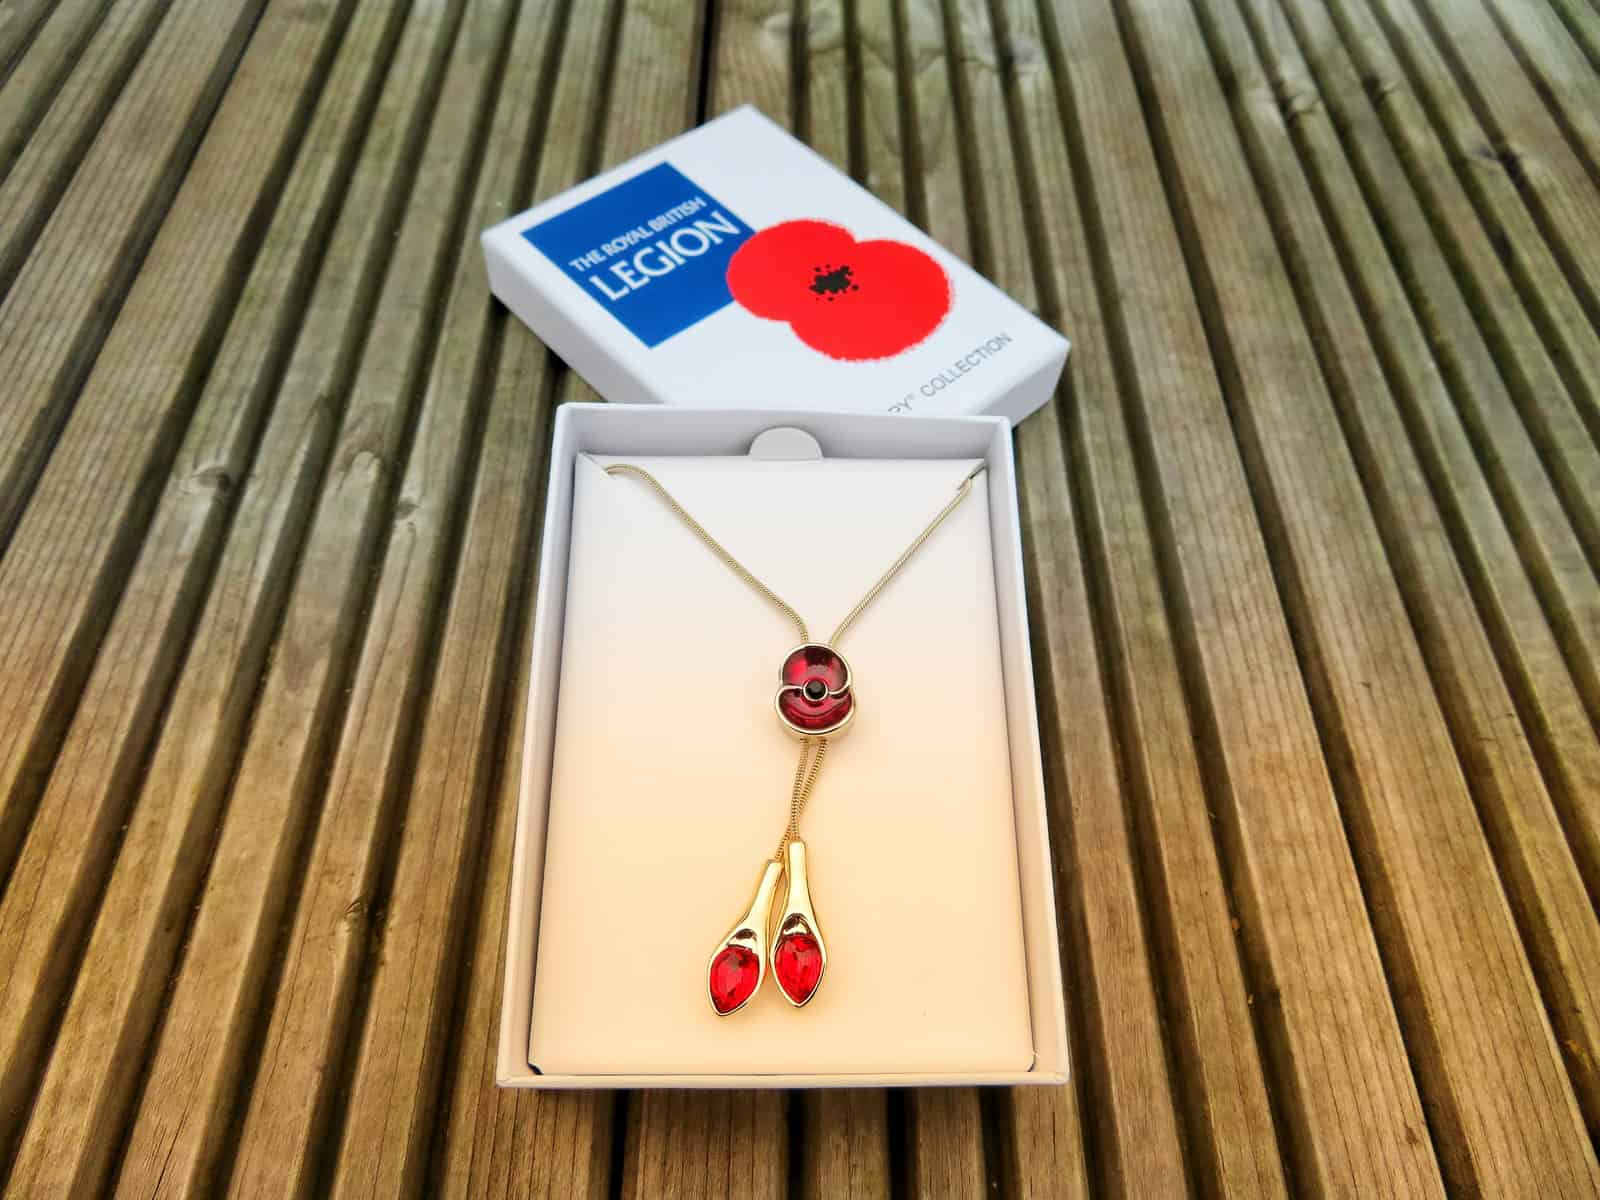 gold necklace with red poppy slider in open white box beside Royal British Legion box lid wit poppy on